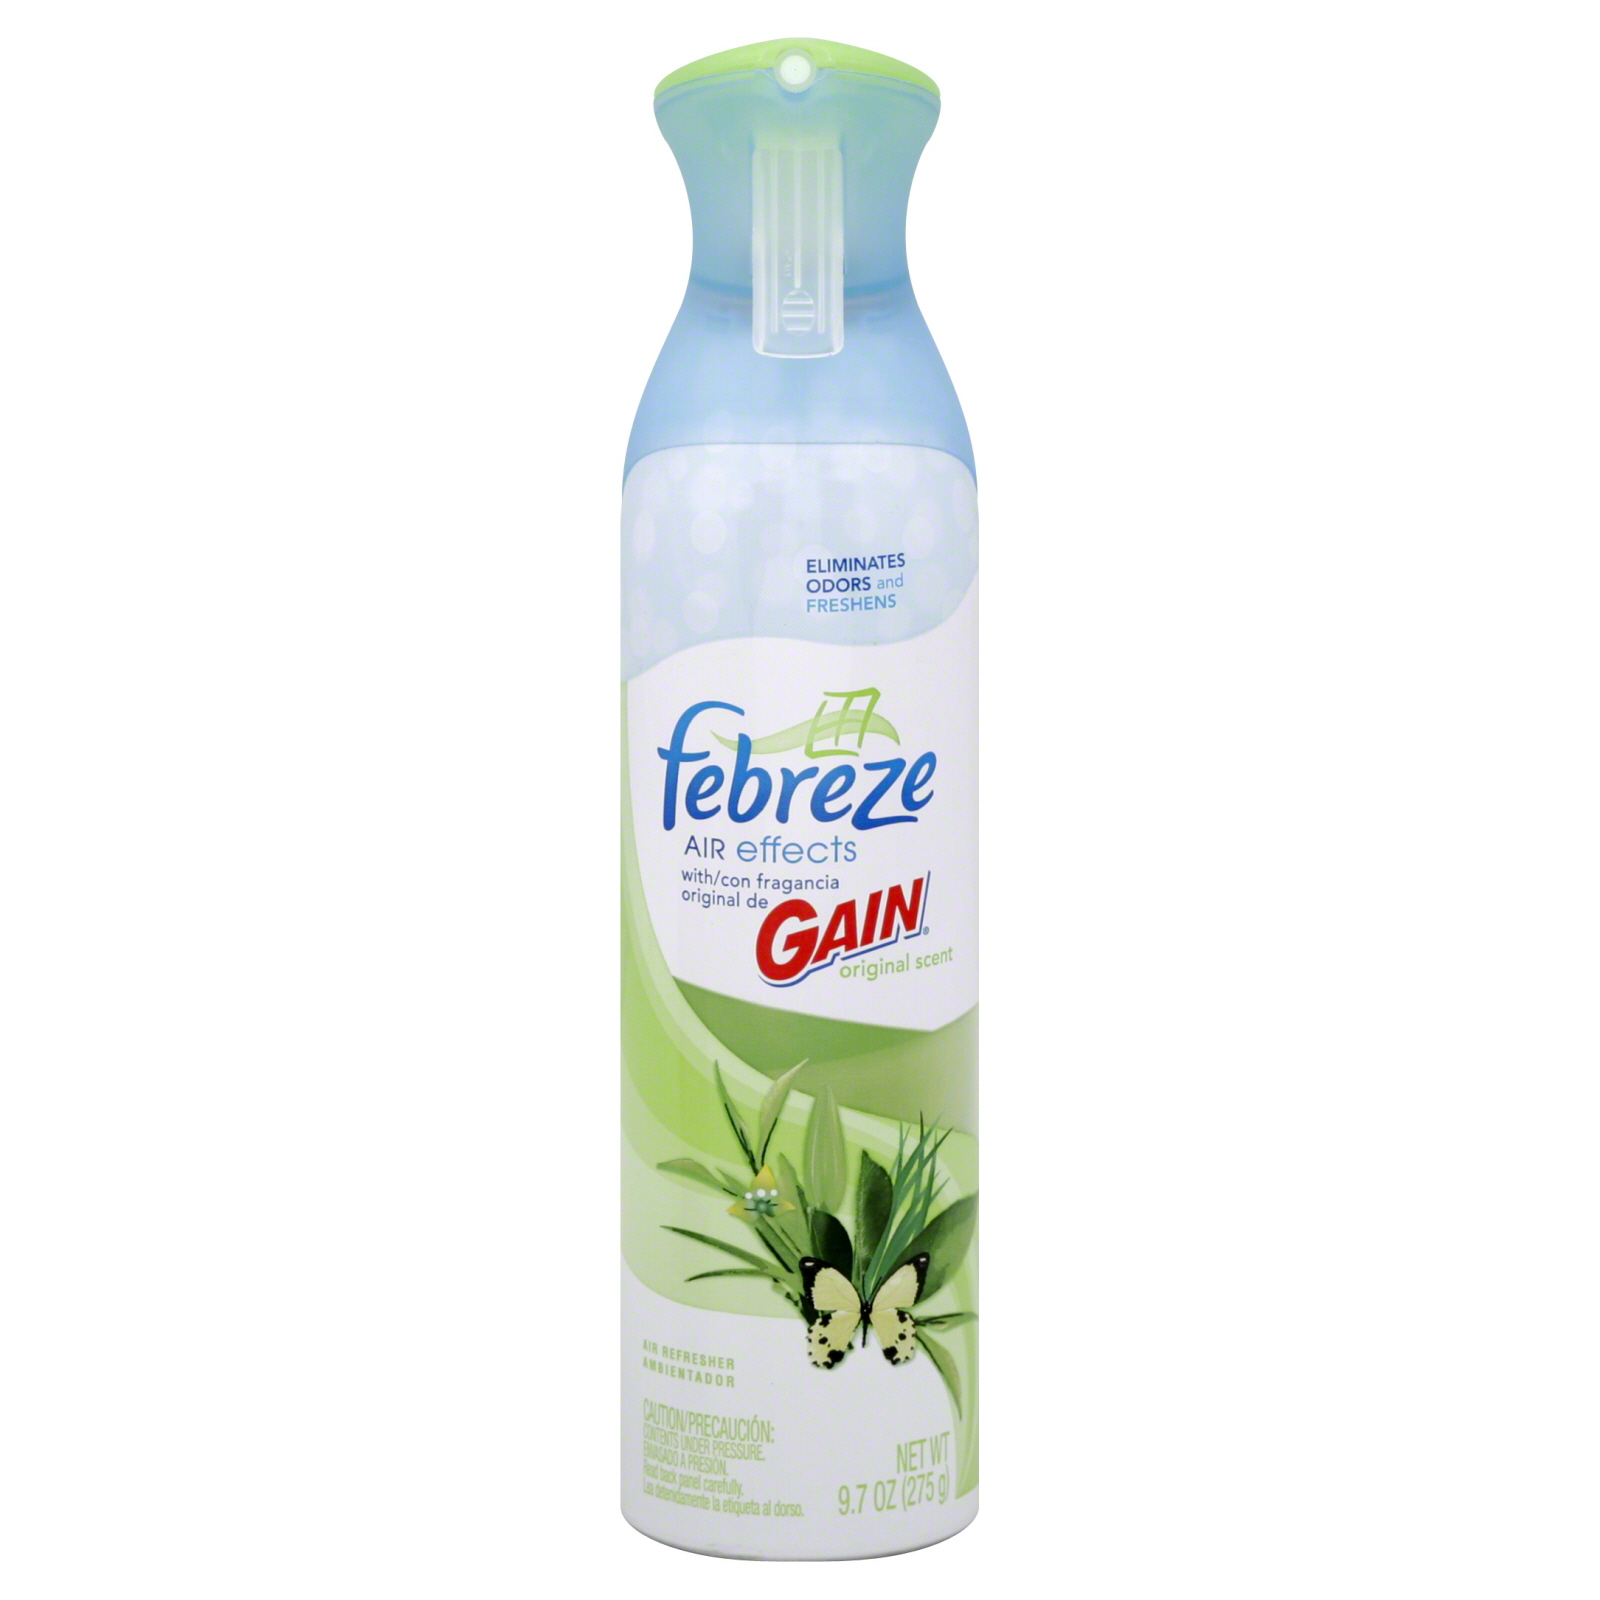 Air Effects Air Freshener, with Gain Original